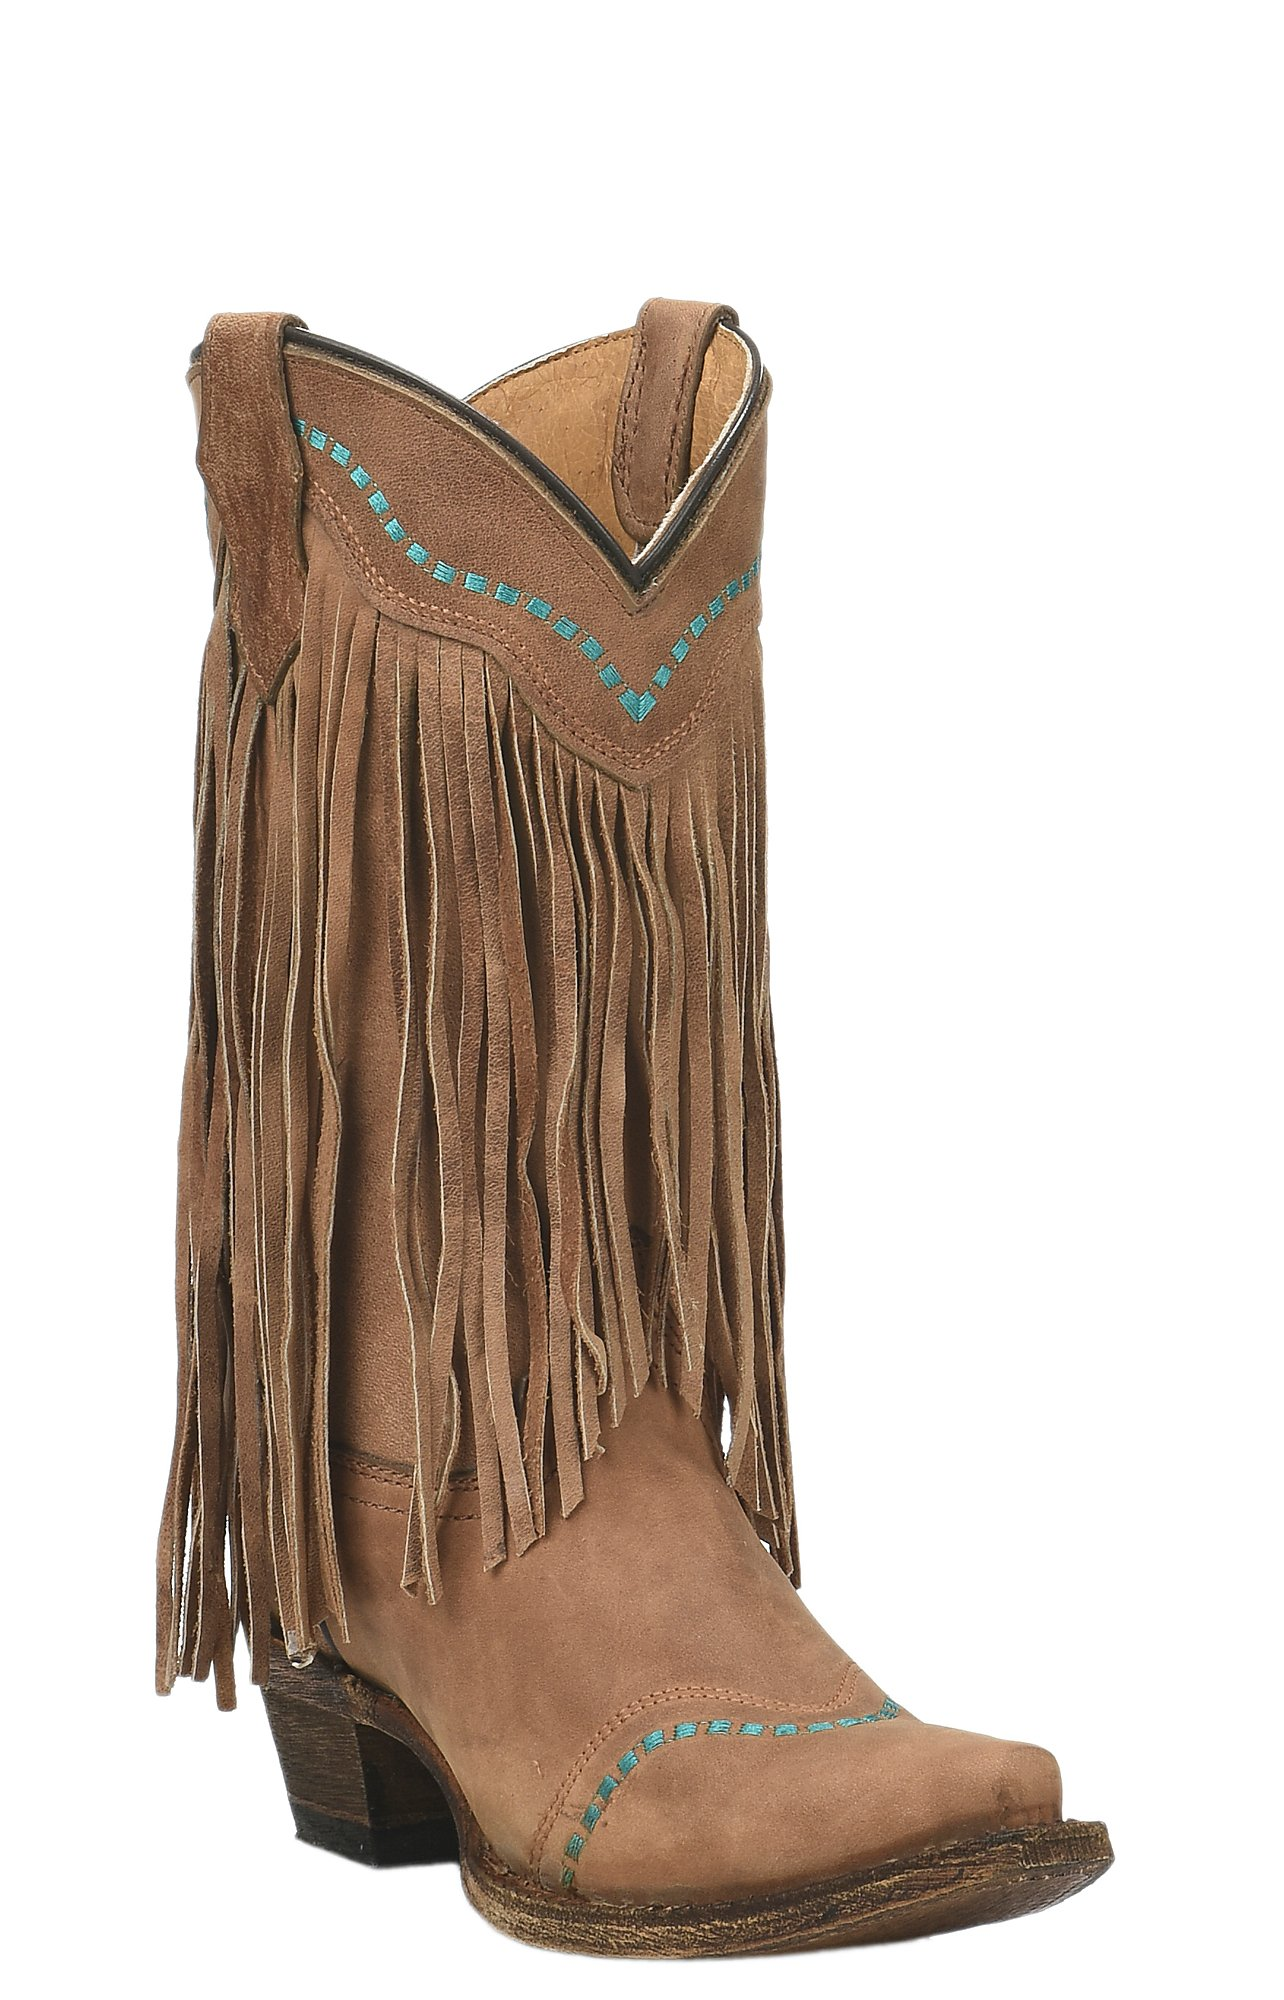 Corral Teen's Tan with Turquoise Stitching and Fringe Snip Toe ...